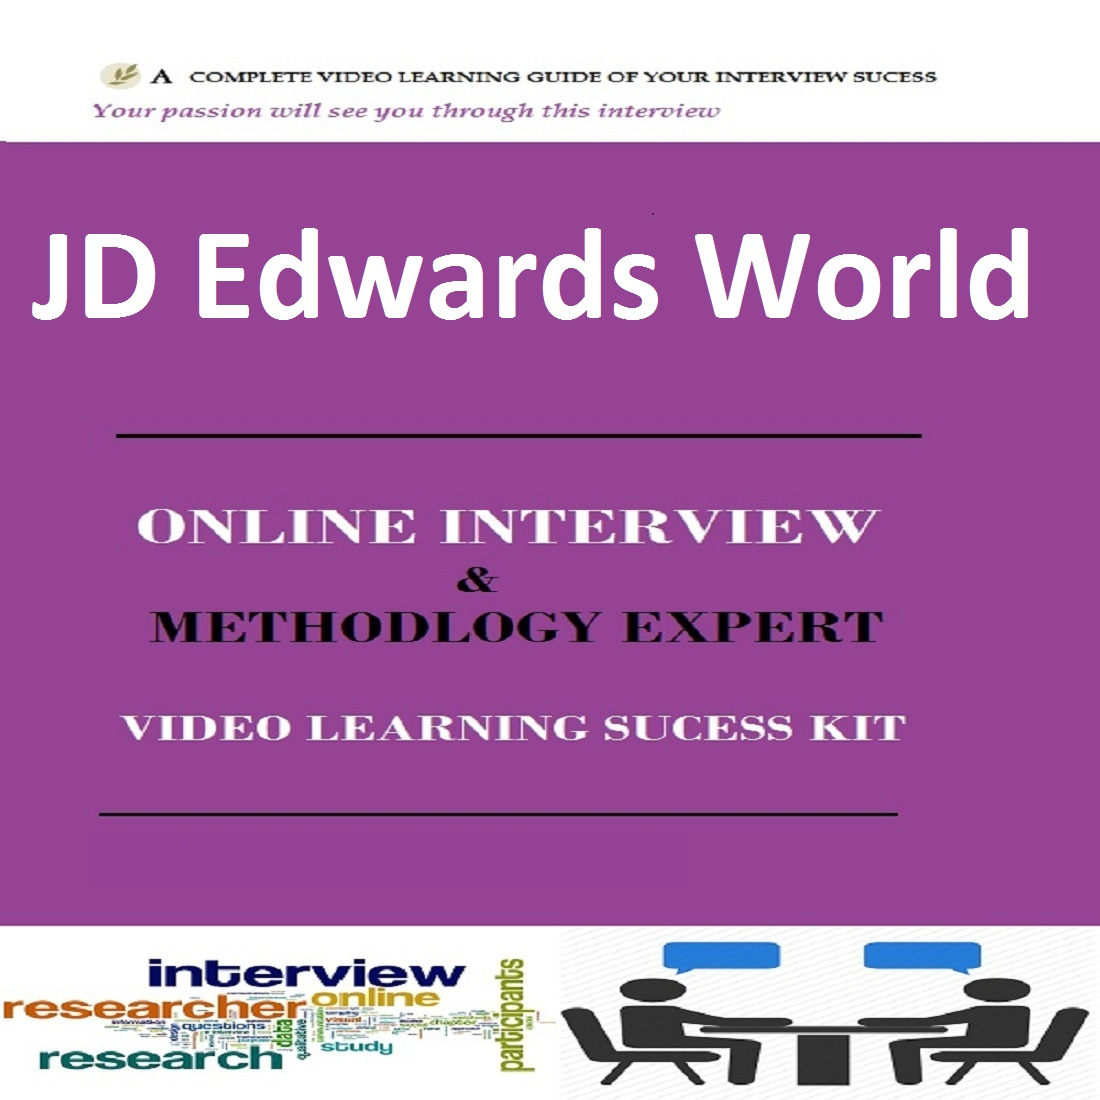 JD Edwards World Online Video Learning Interview SUCCESS KIT